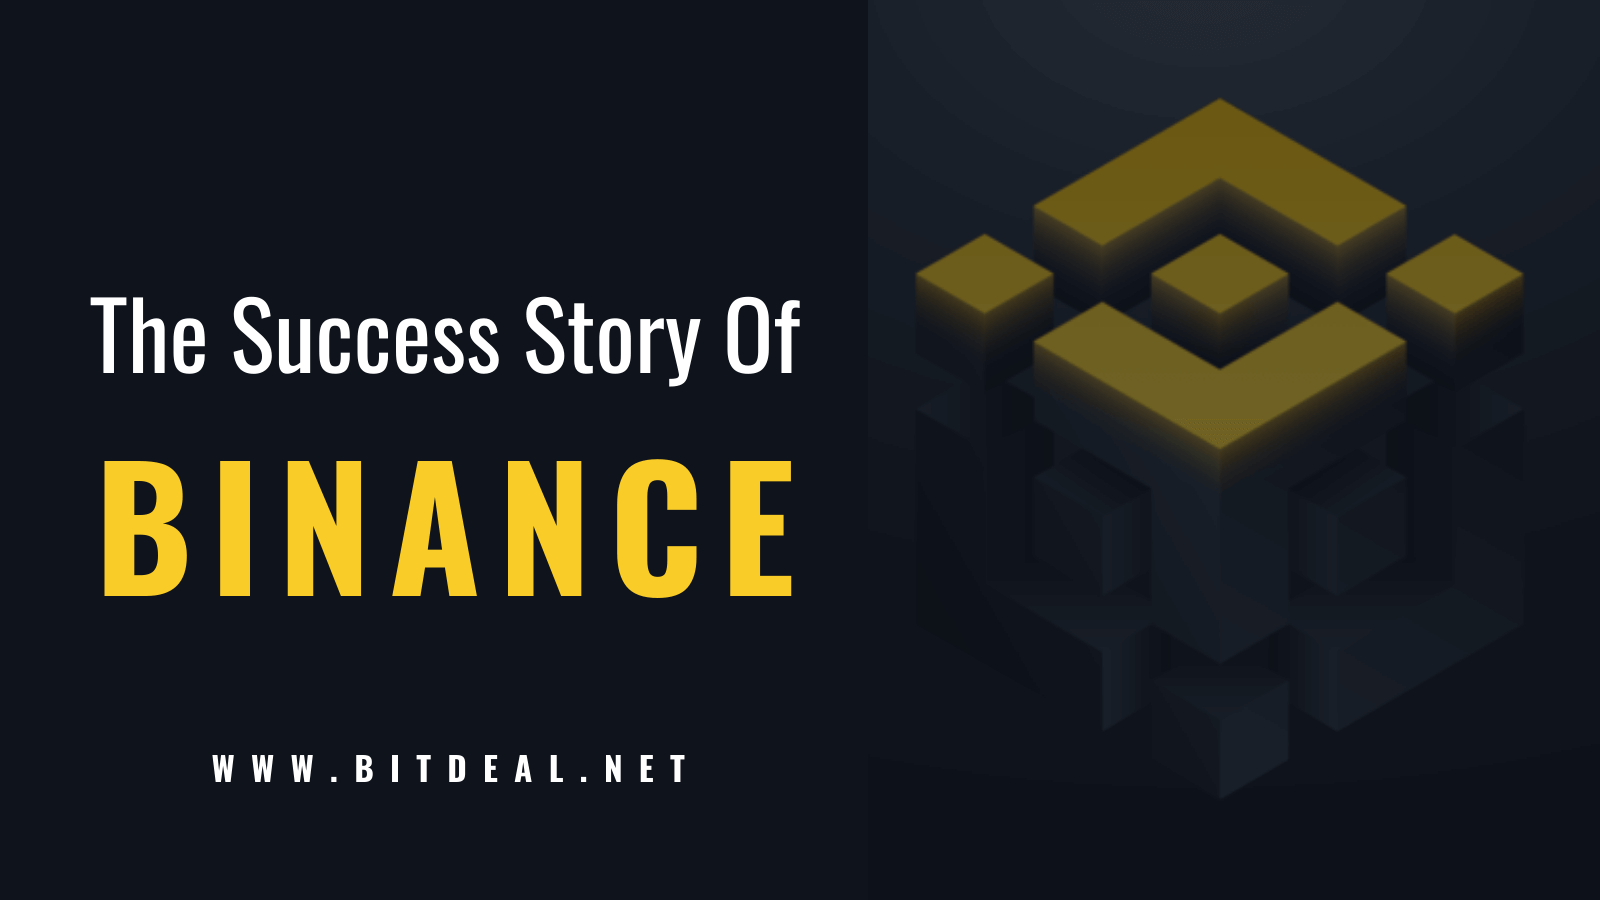 The Epic Story of Binance - From Zero To A Billion Dollar Exchange